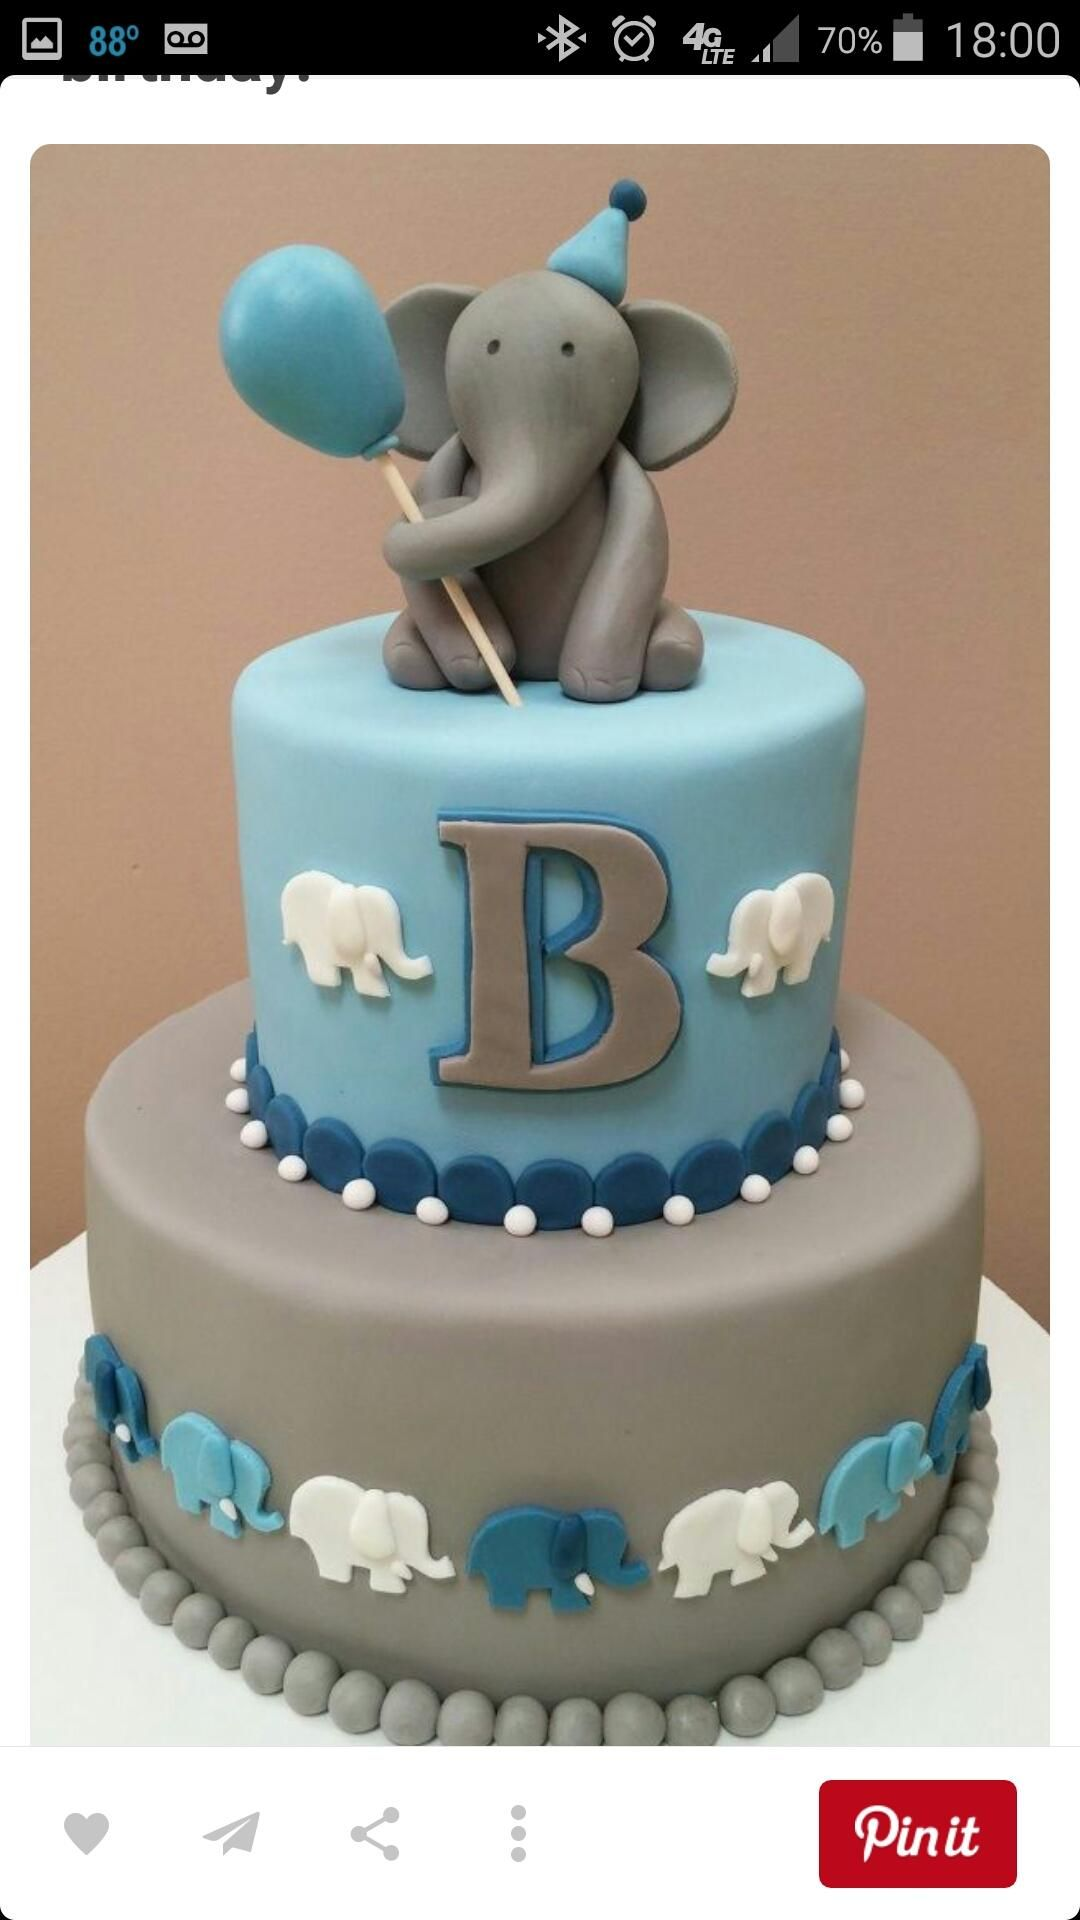 Wonderful Elephant Cake For A Little Guys First Birthday, Or Baby Shower And Could Ve  Even Pink For Girl!